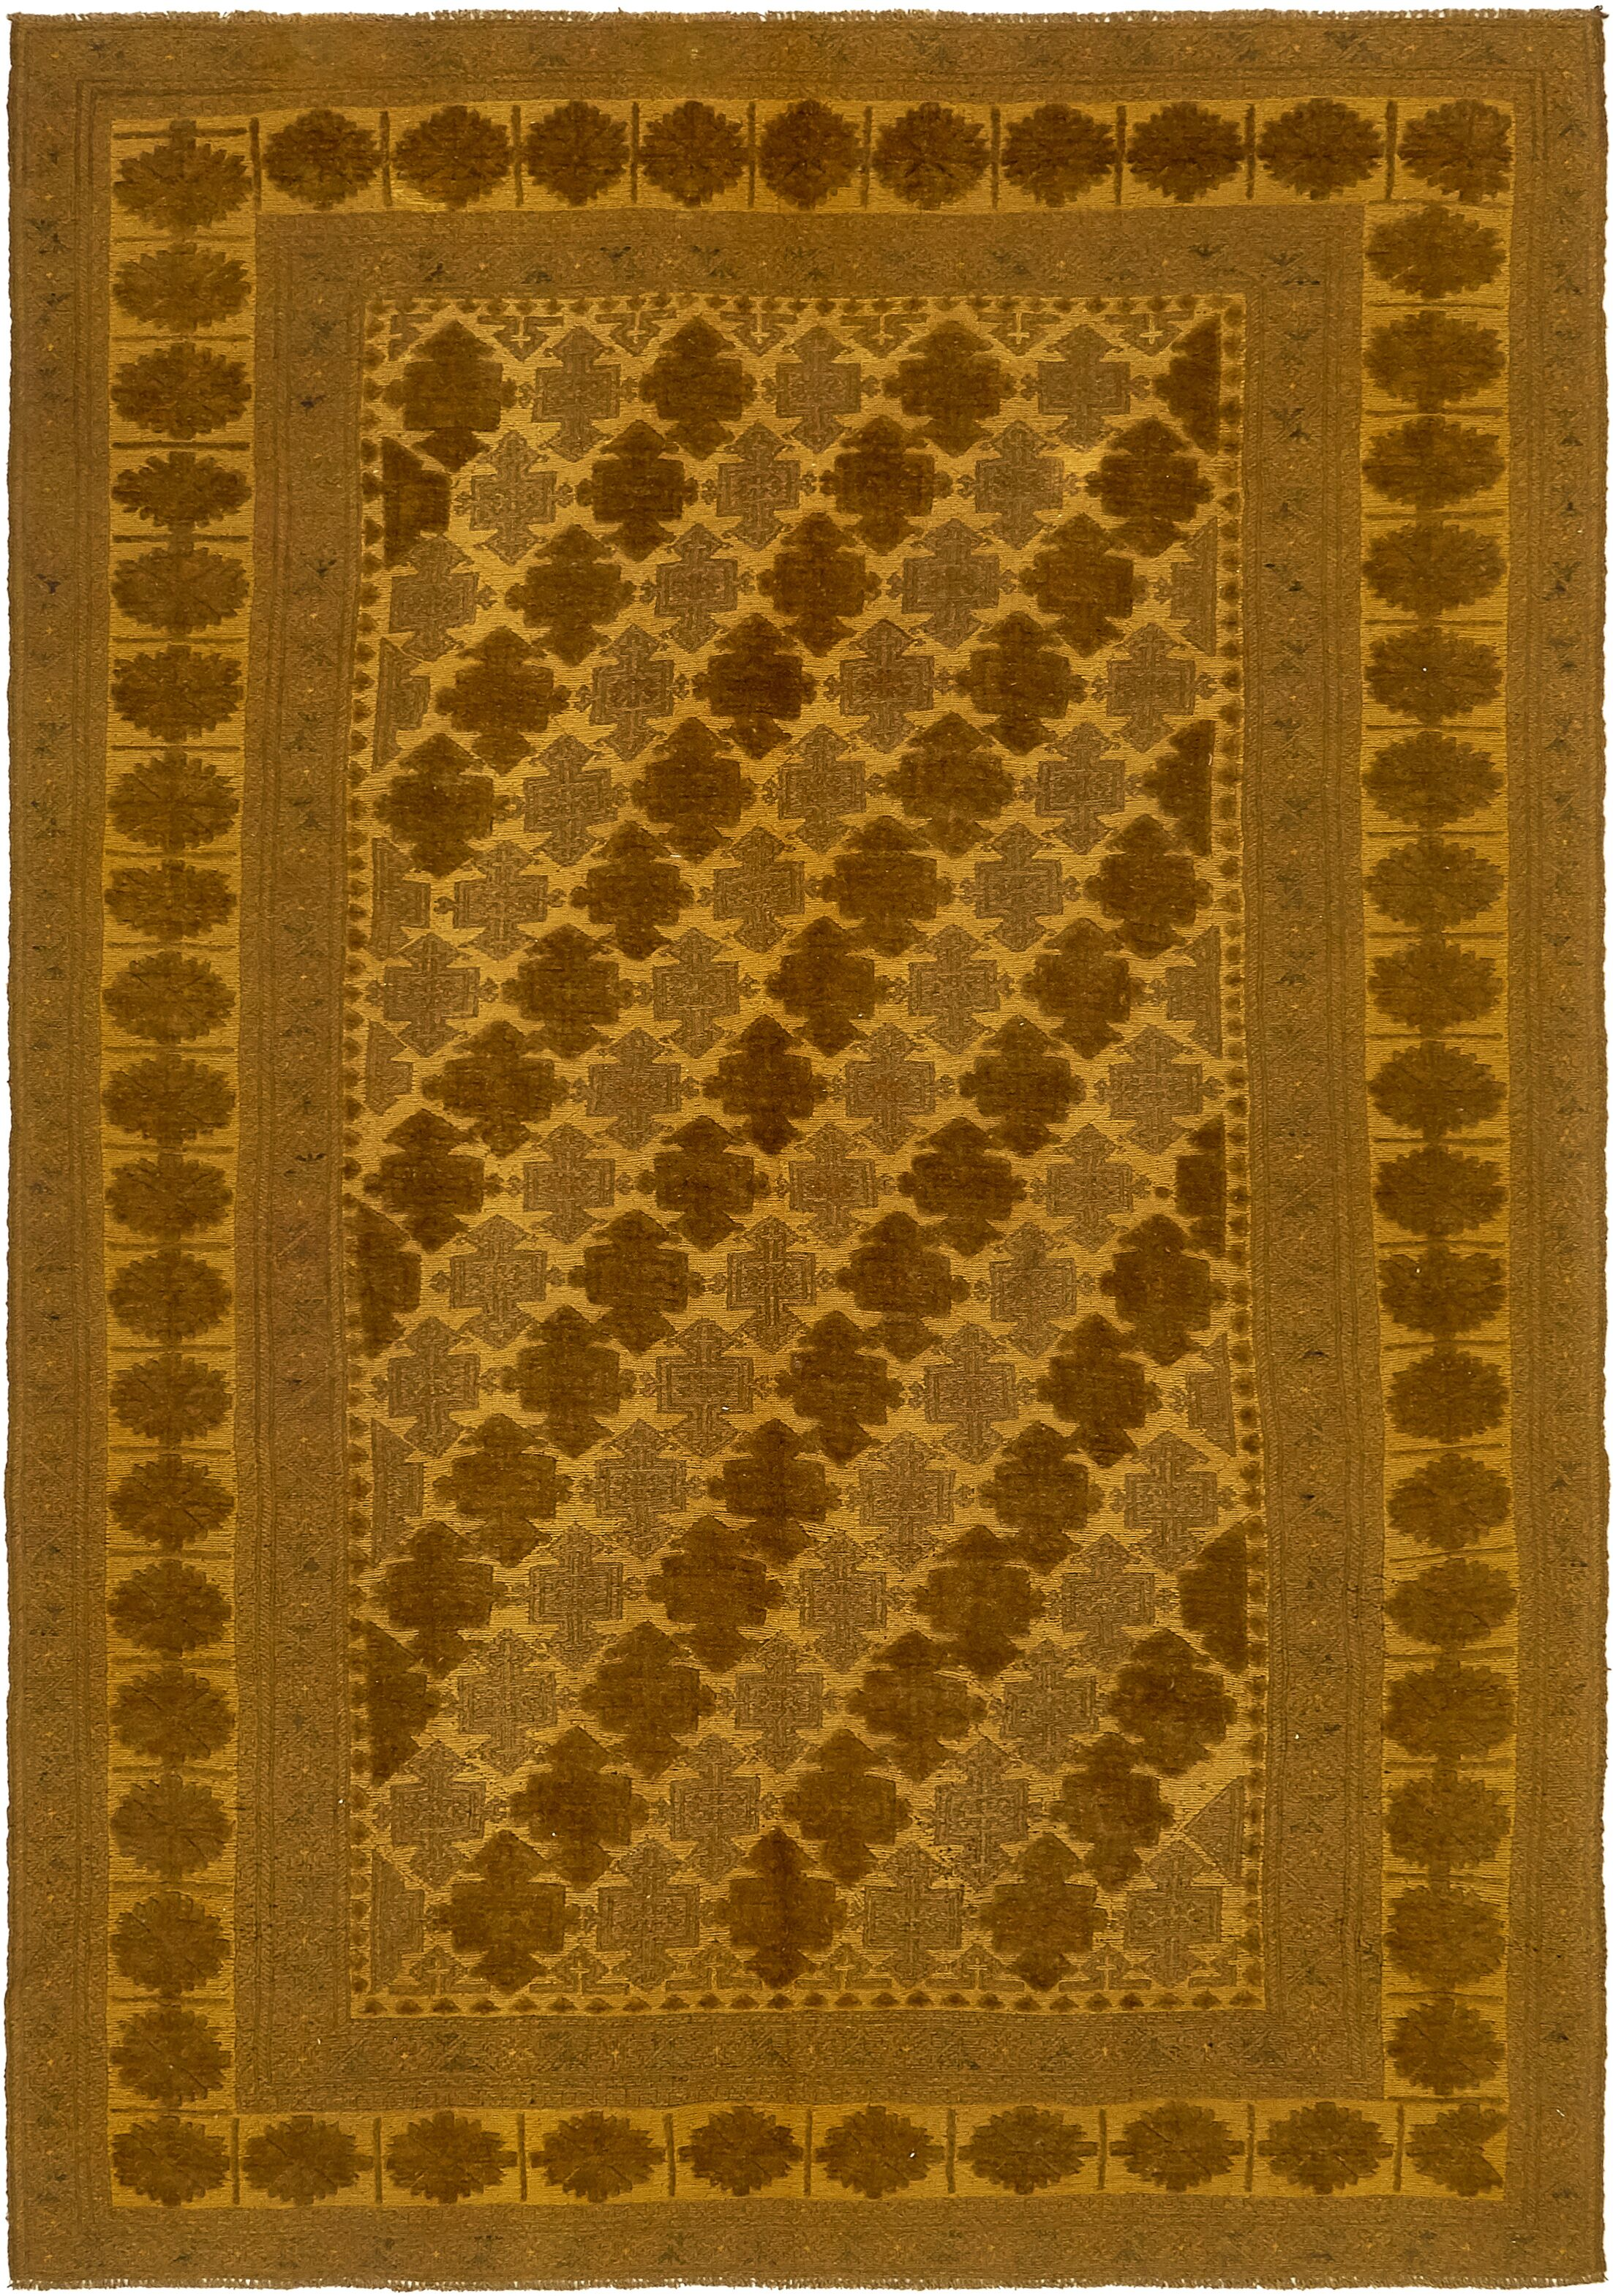 One-of-a-Kind Earley Hand-Knotted Wool Brown/Beige Area Rug